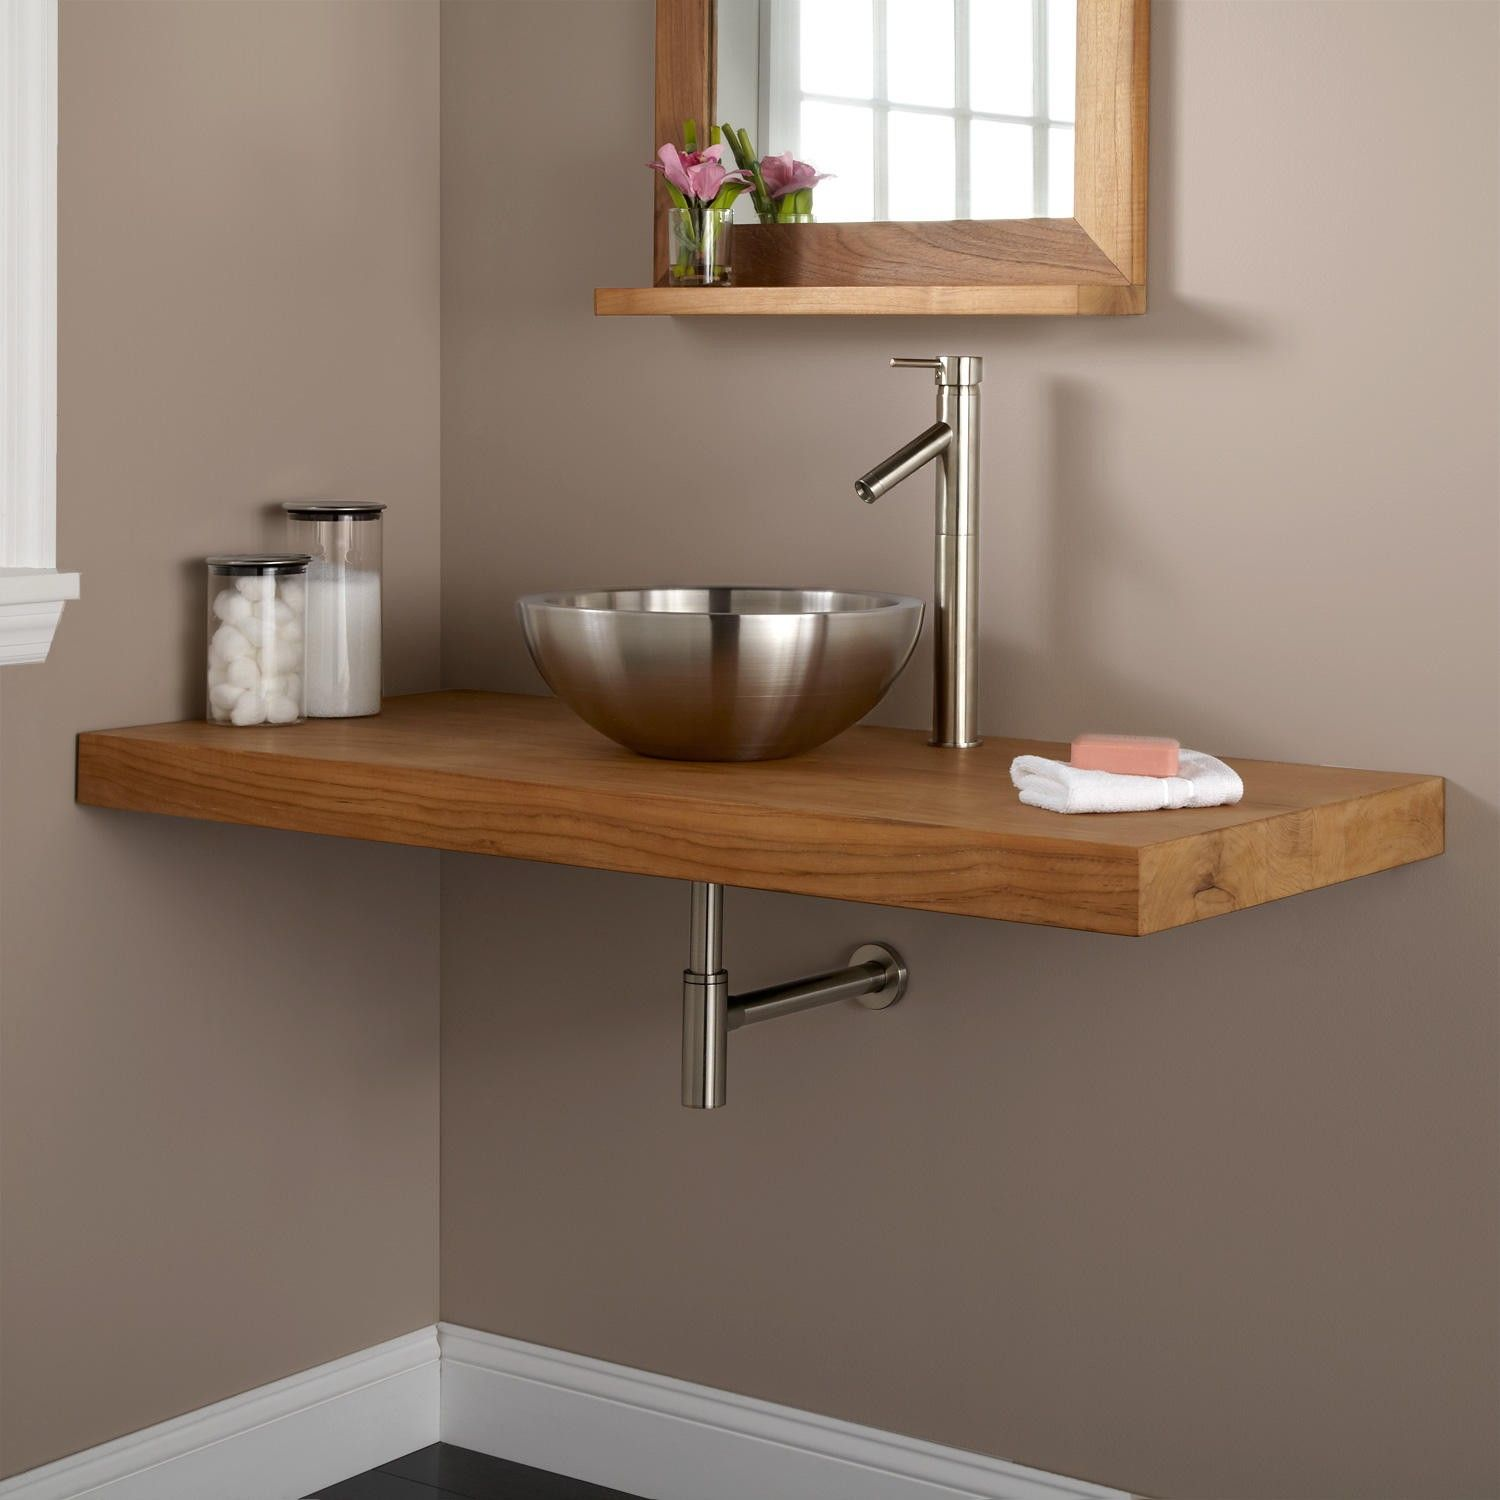 49 Teak Wall Mount Vanity Top For Vessel Sink Modern Bathroomsmodern Bathroom Vanitiessmall